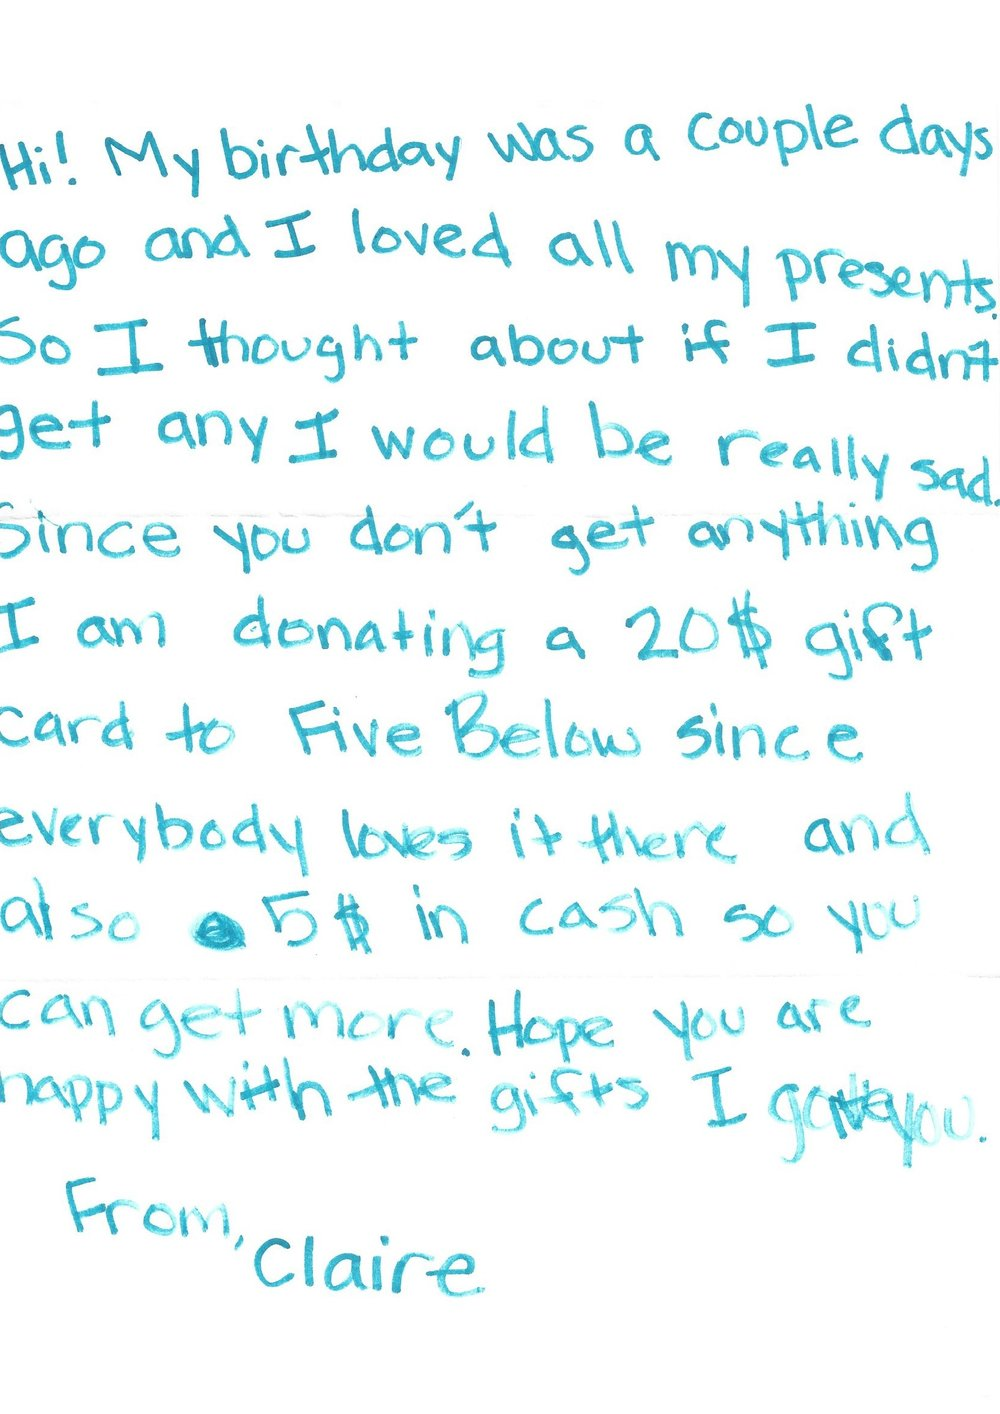 Kids are awesome. A letter from one of Birthday Wishes' young donors. Photo courtesy of Birthday Wishes.